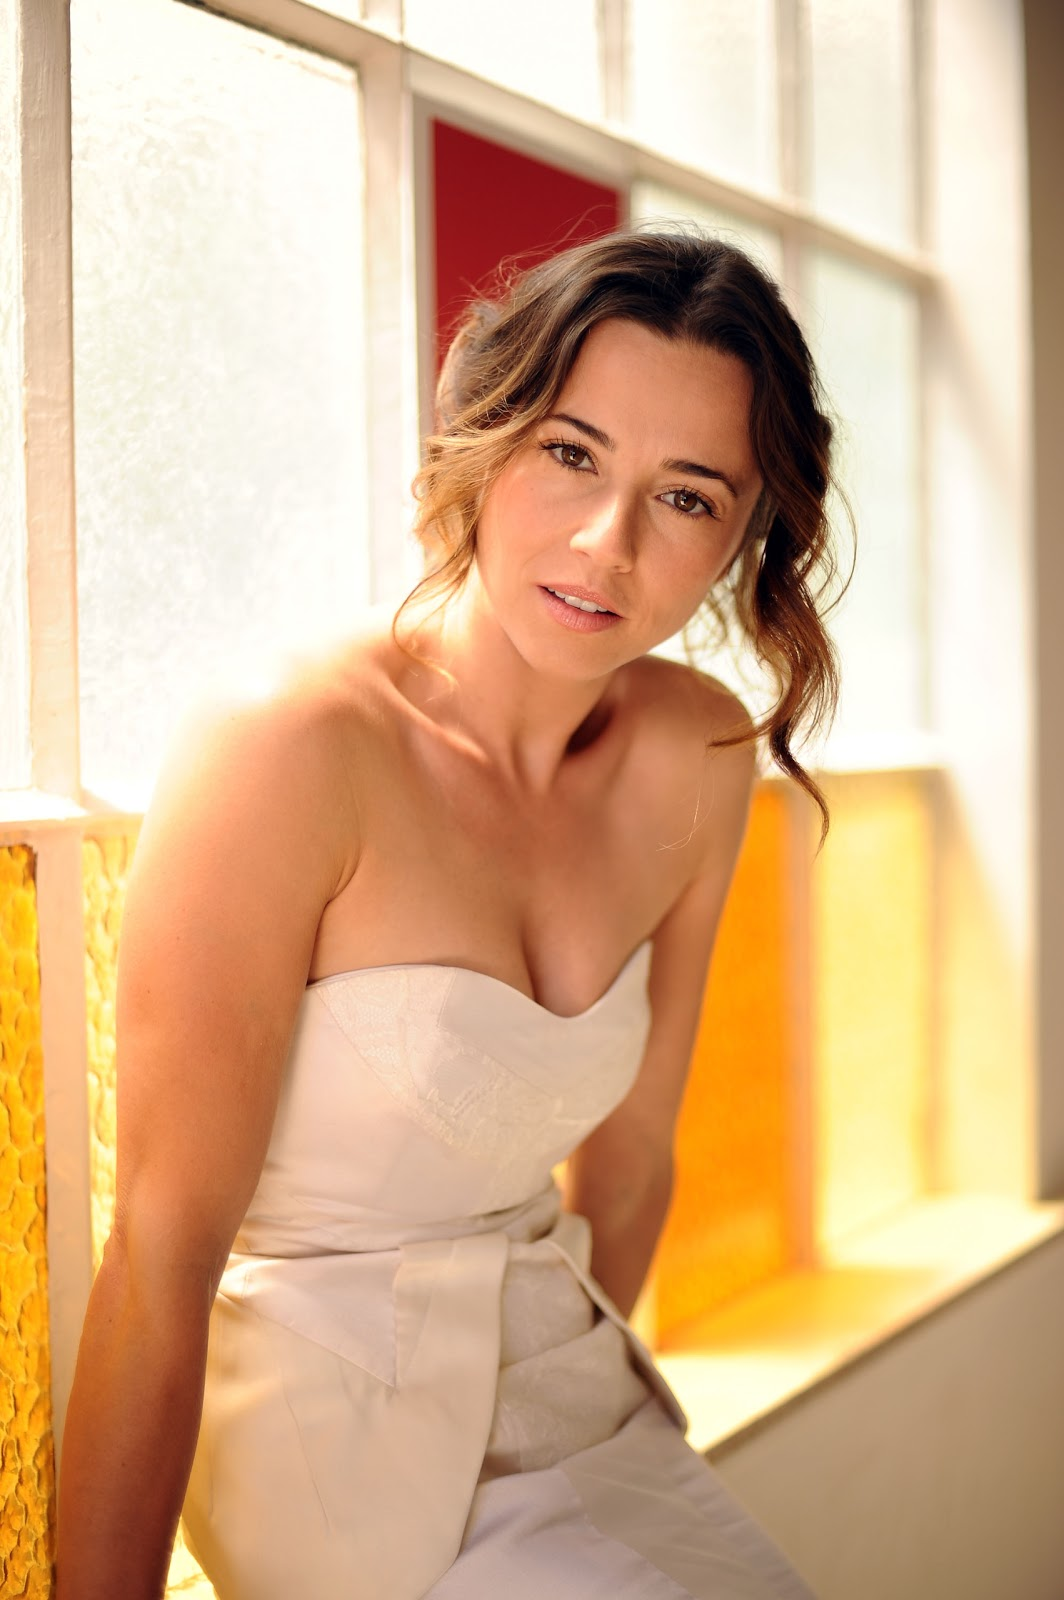 Linda Cardellini Photoshoot Hd Celebrity Pictures Hot